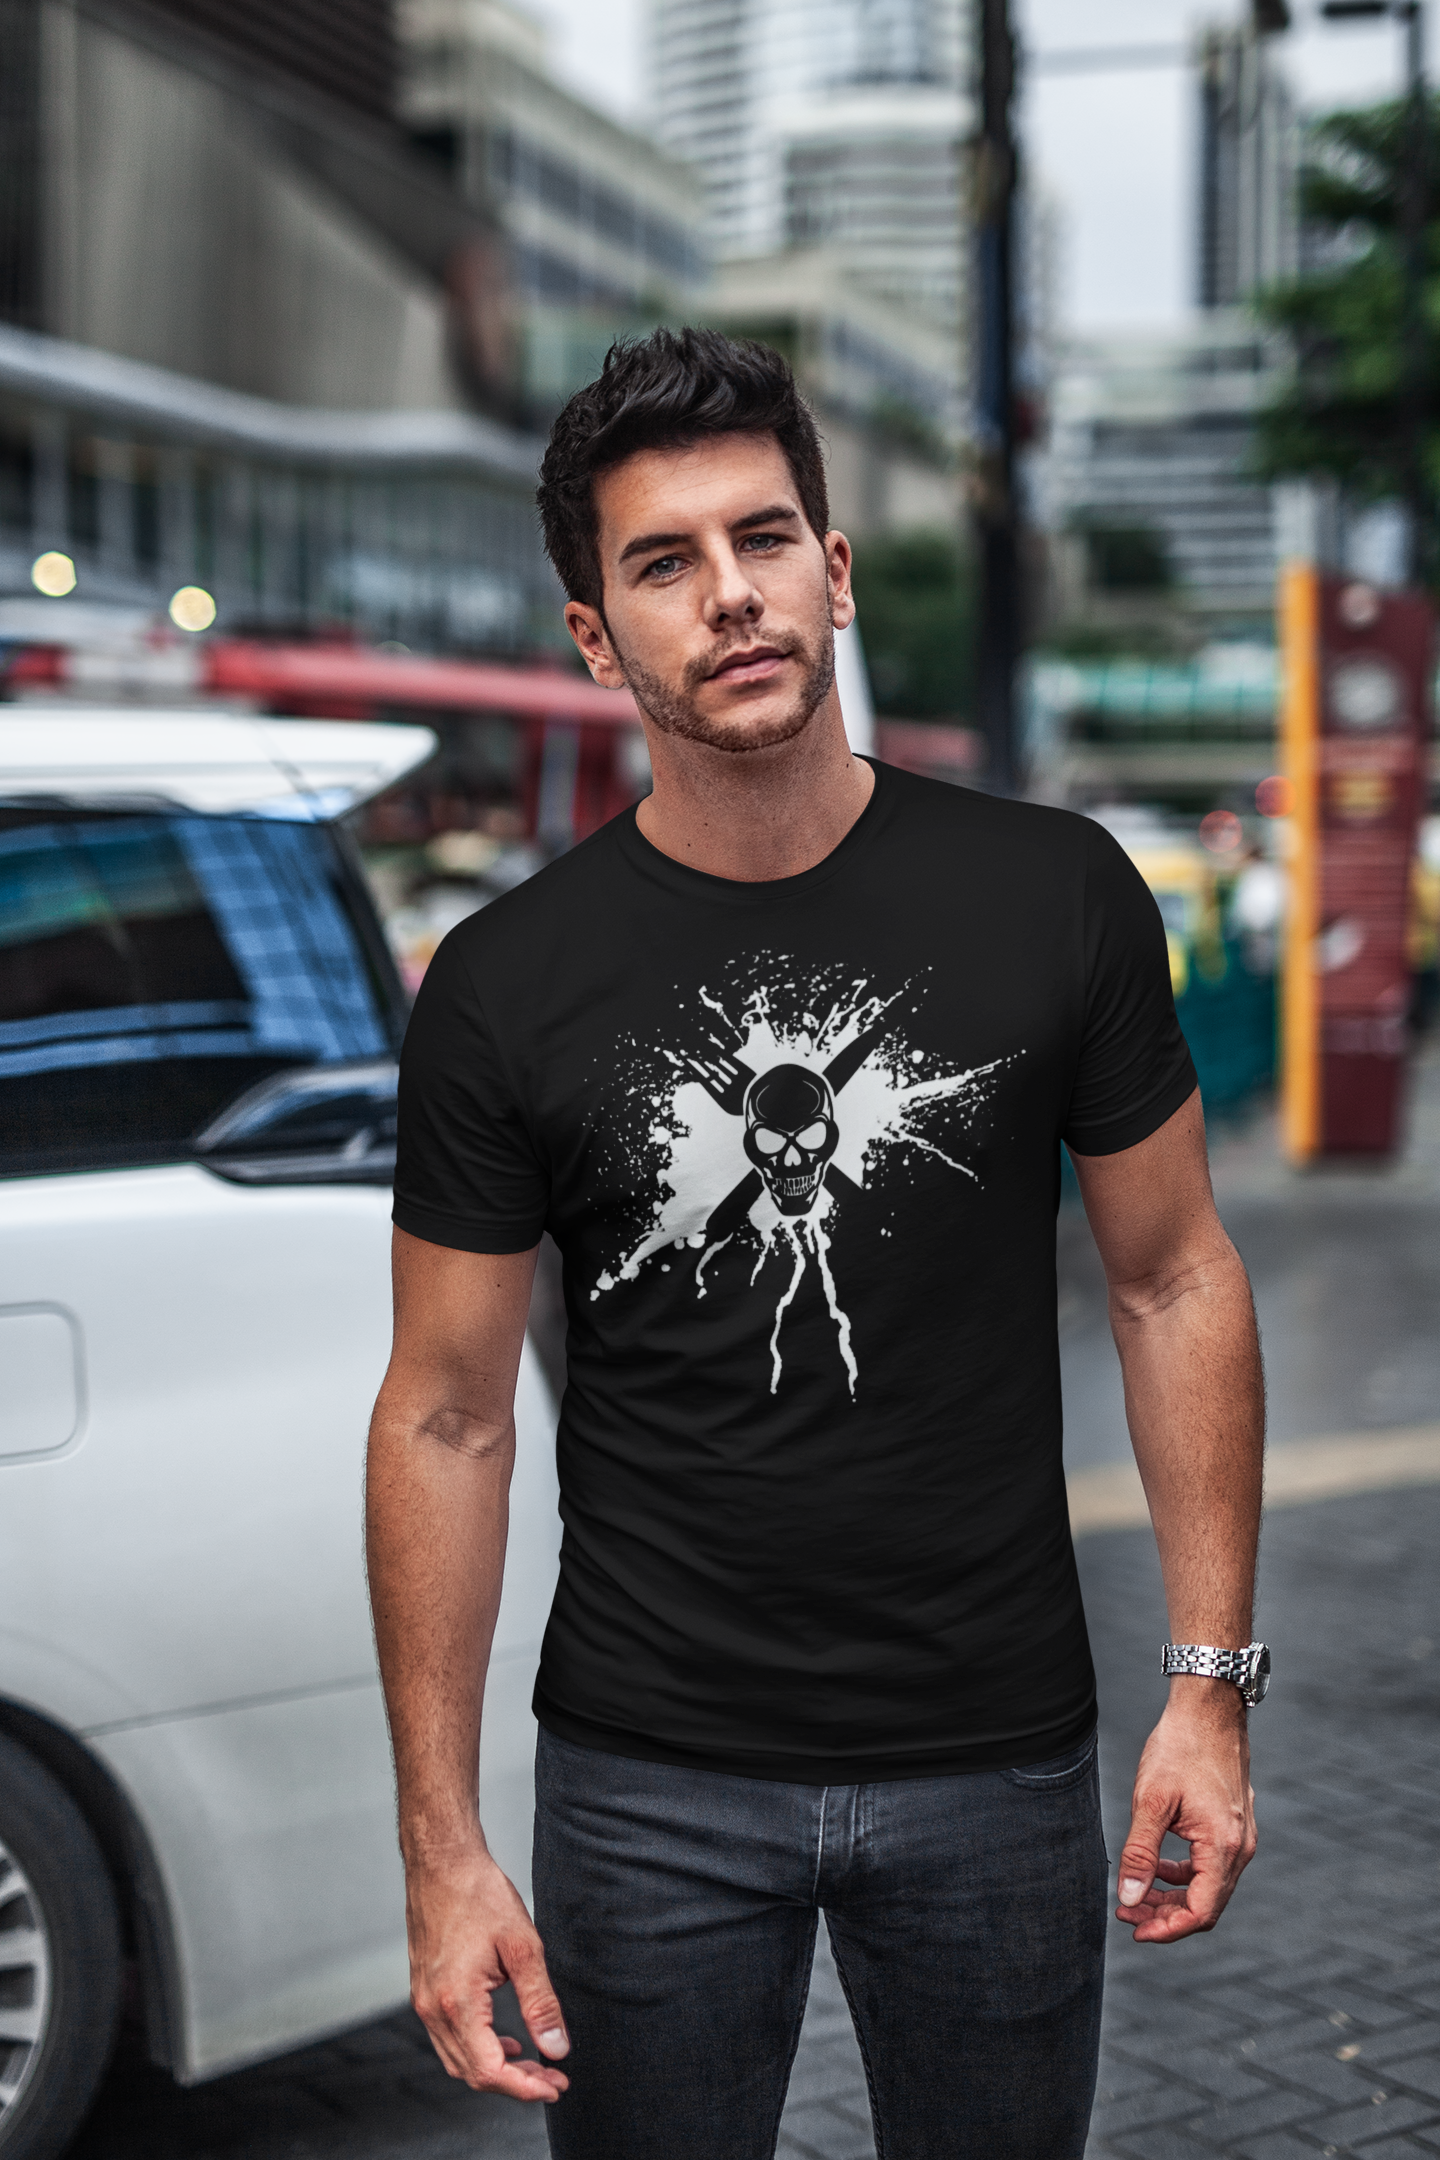 t-shirt-mockup-of-a-stylish-man-in-a-crowded-street-438-el.png